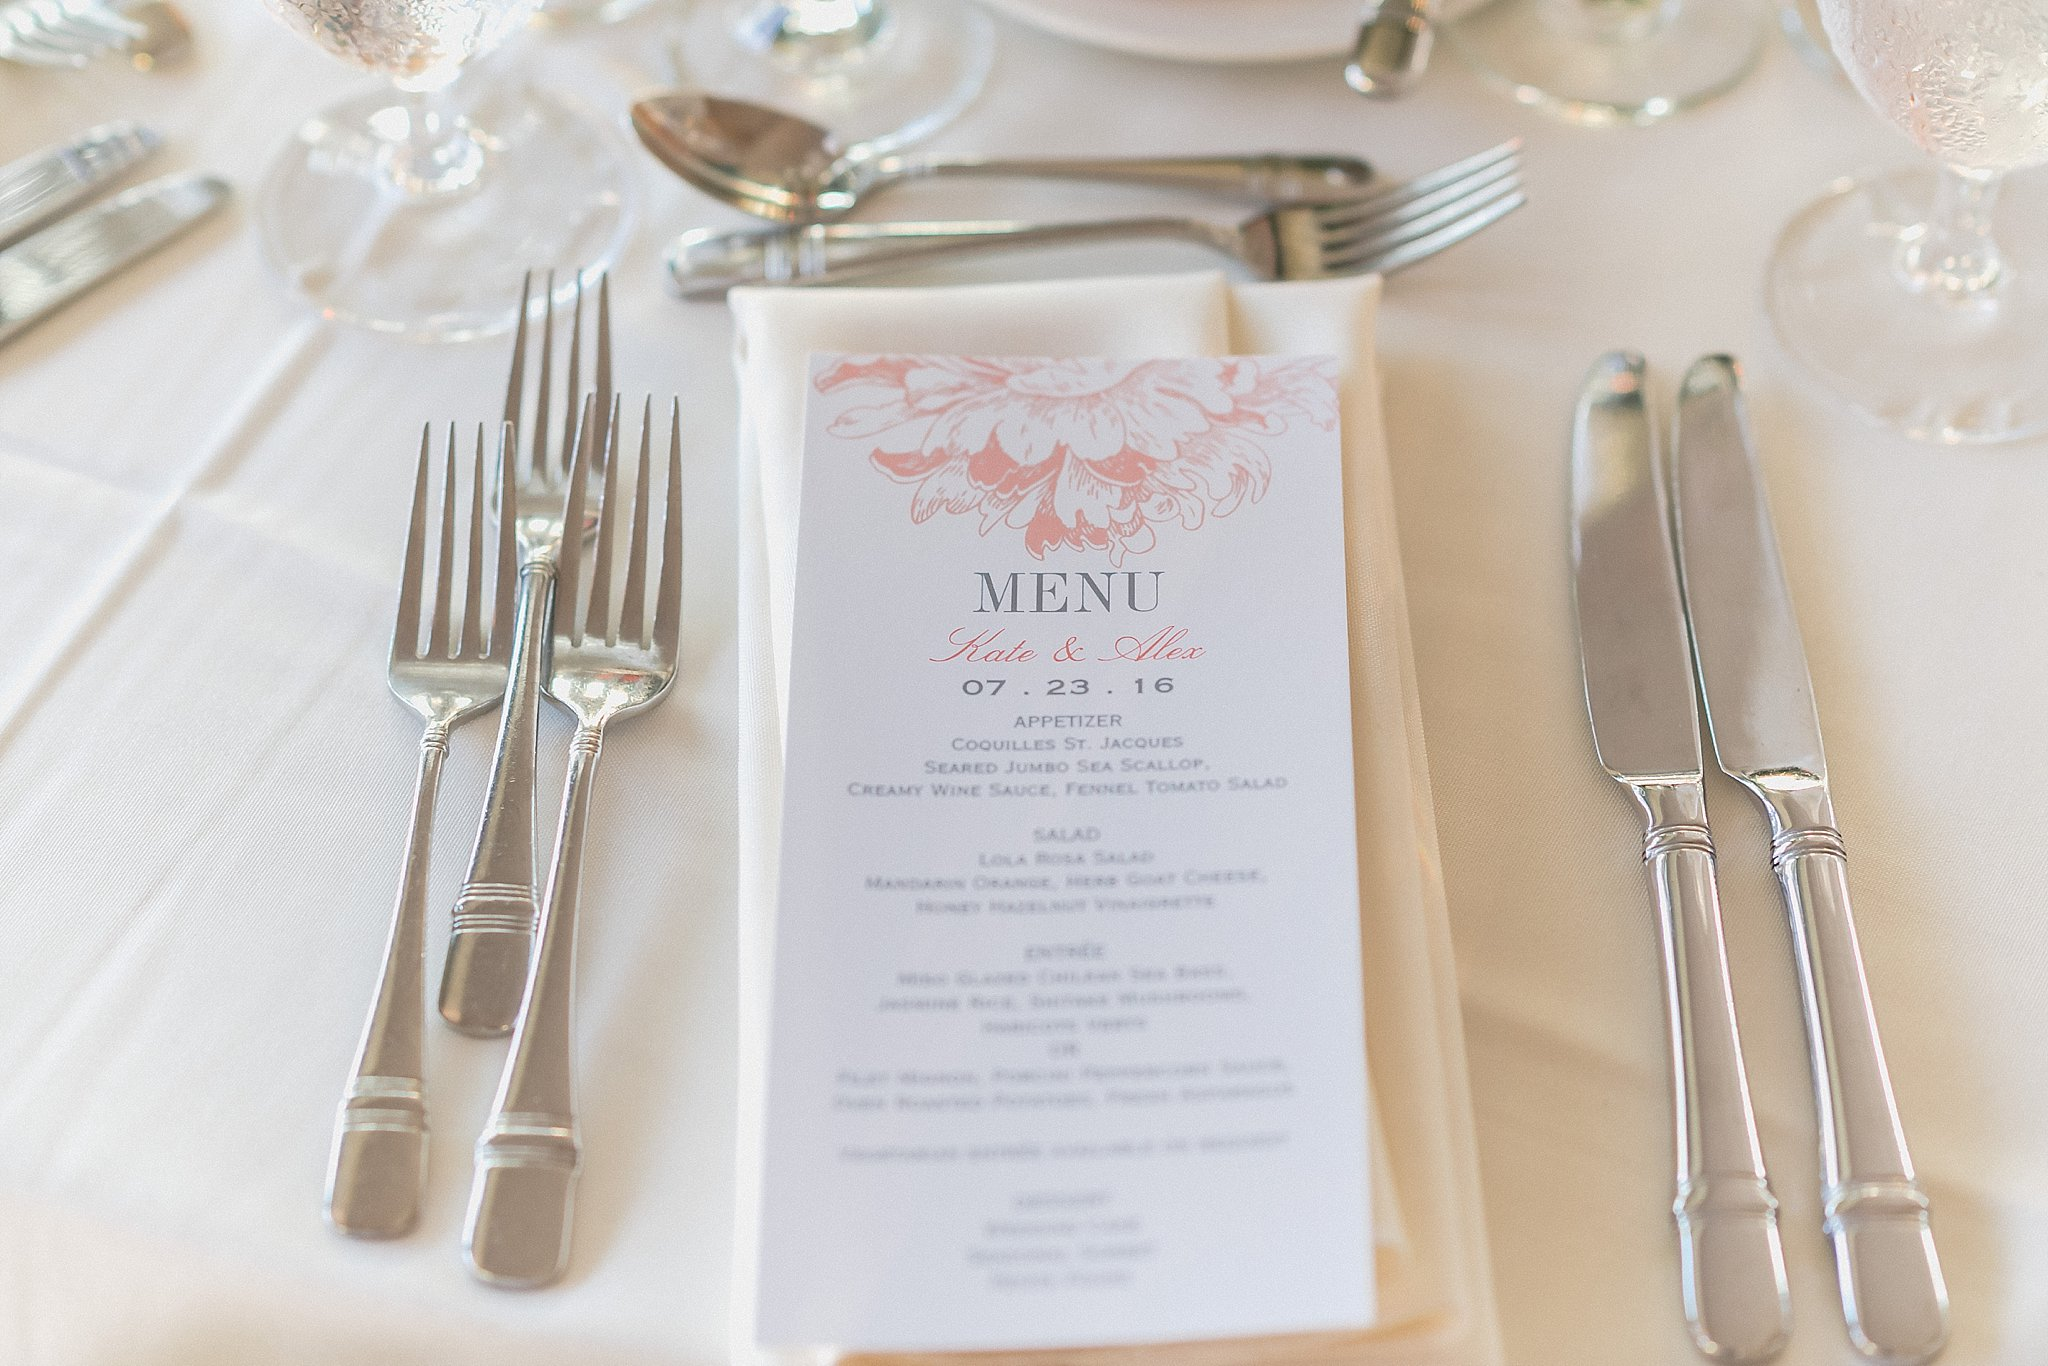 Wedding Reception Styling photographed by Susan Shek Wedding Photography in New York City, NY.